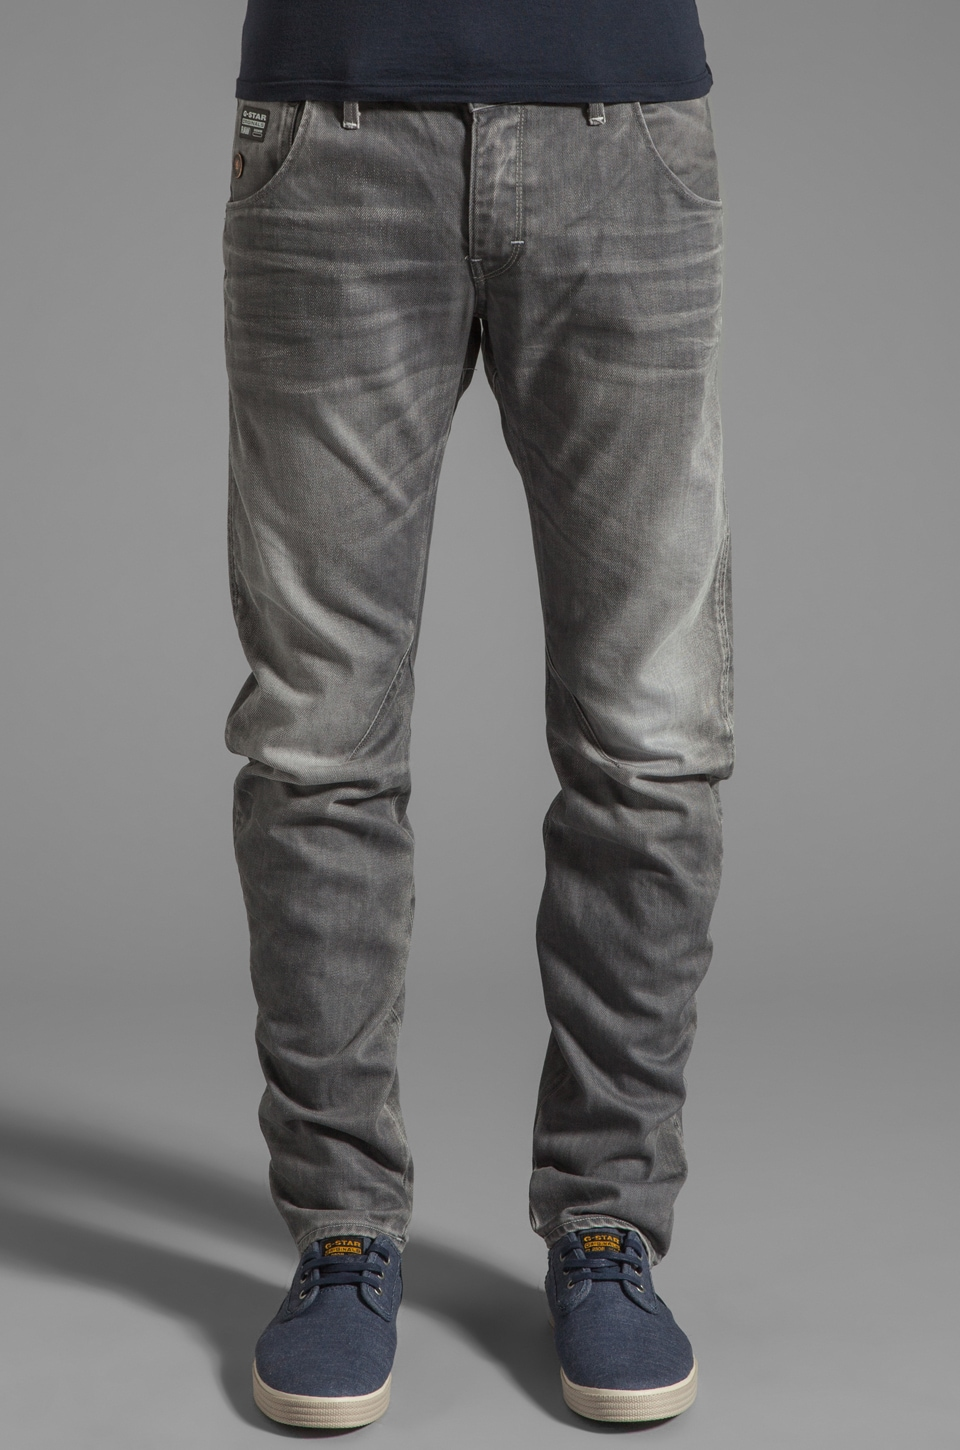 G-Star Arc 3D Slim in Dust Denim Light Aged